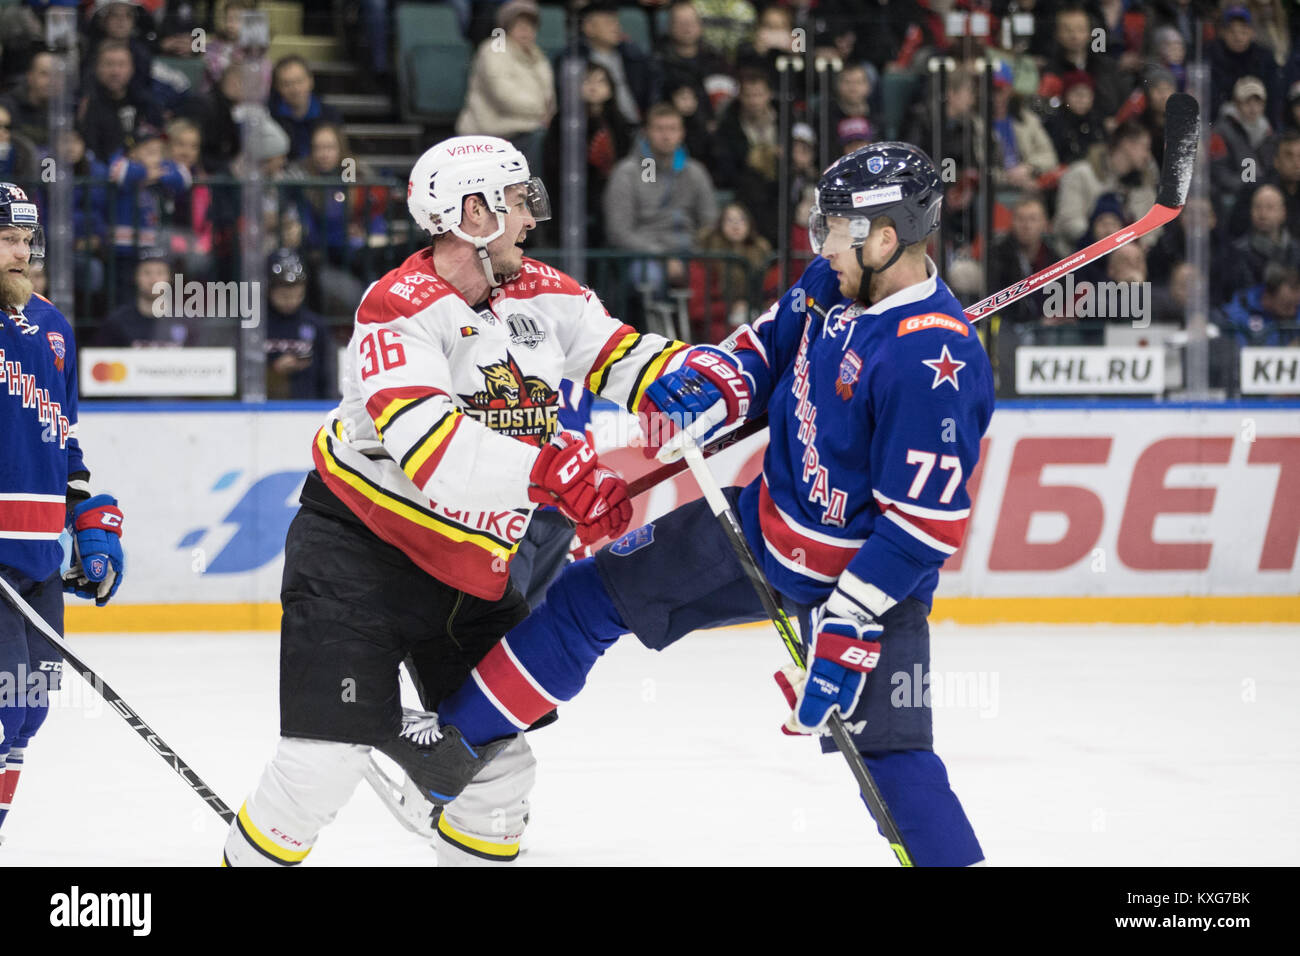 St. Petersburg. 10th Jan, 2018. Joonas Jarvinen (L) of Kunlun Red Star fights with Anton Belov of SKA during the Stock Photo